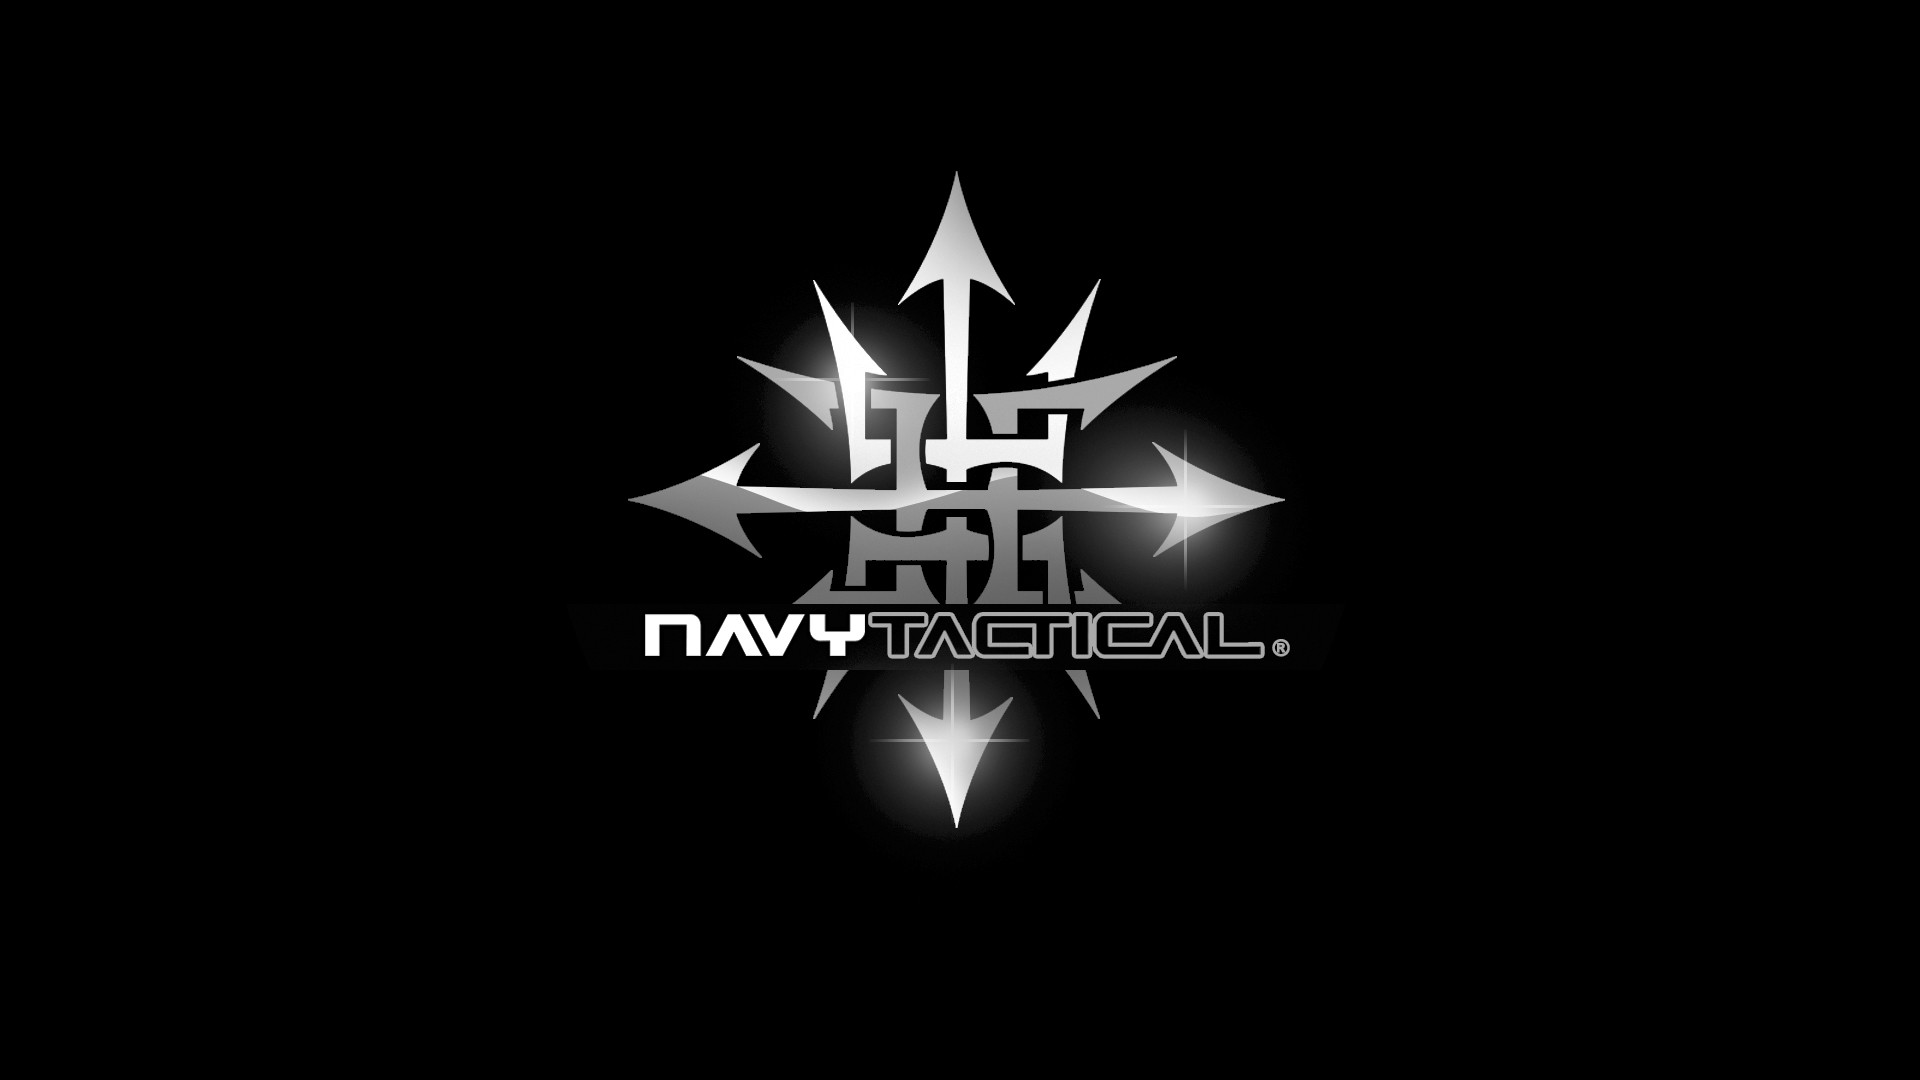 Us navy seal logo wallpaper 56 images 1920x1080 military simple united states navy wallpapers hd desktop and mobile backgrounds voltagebd Images